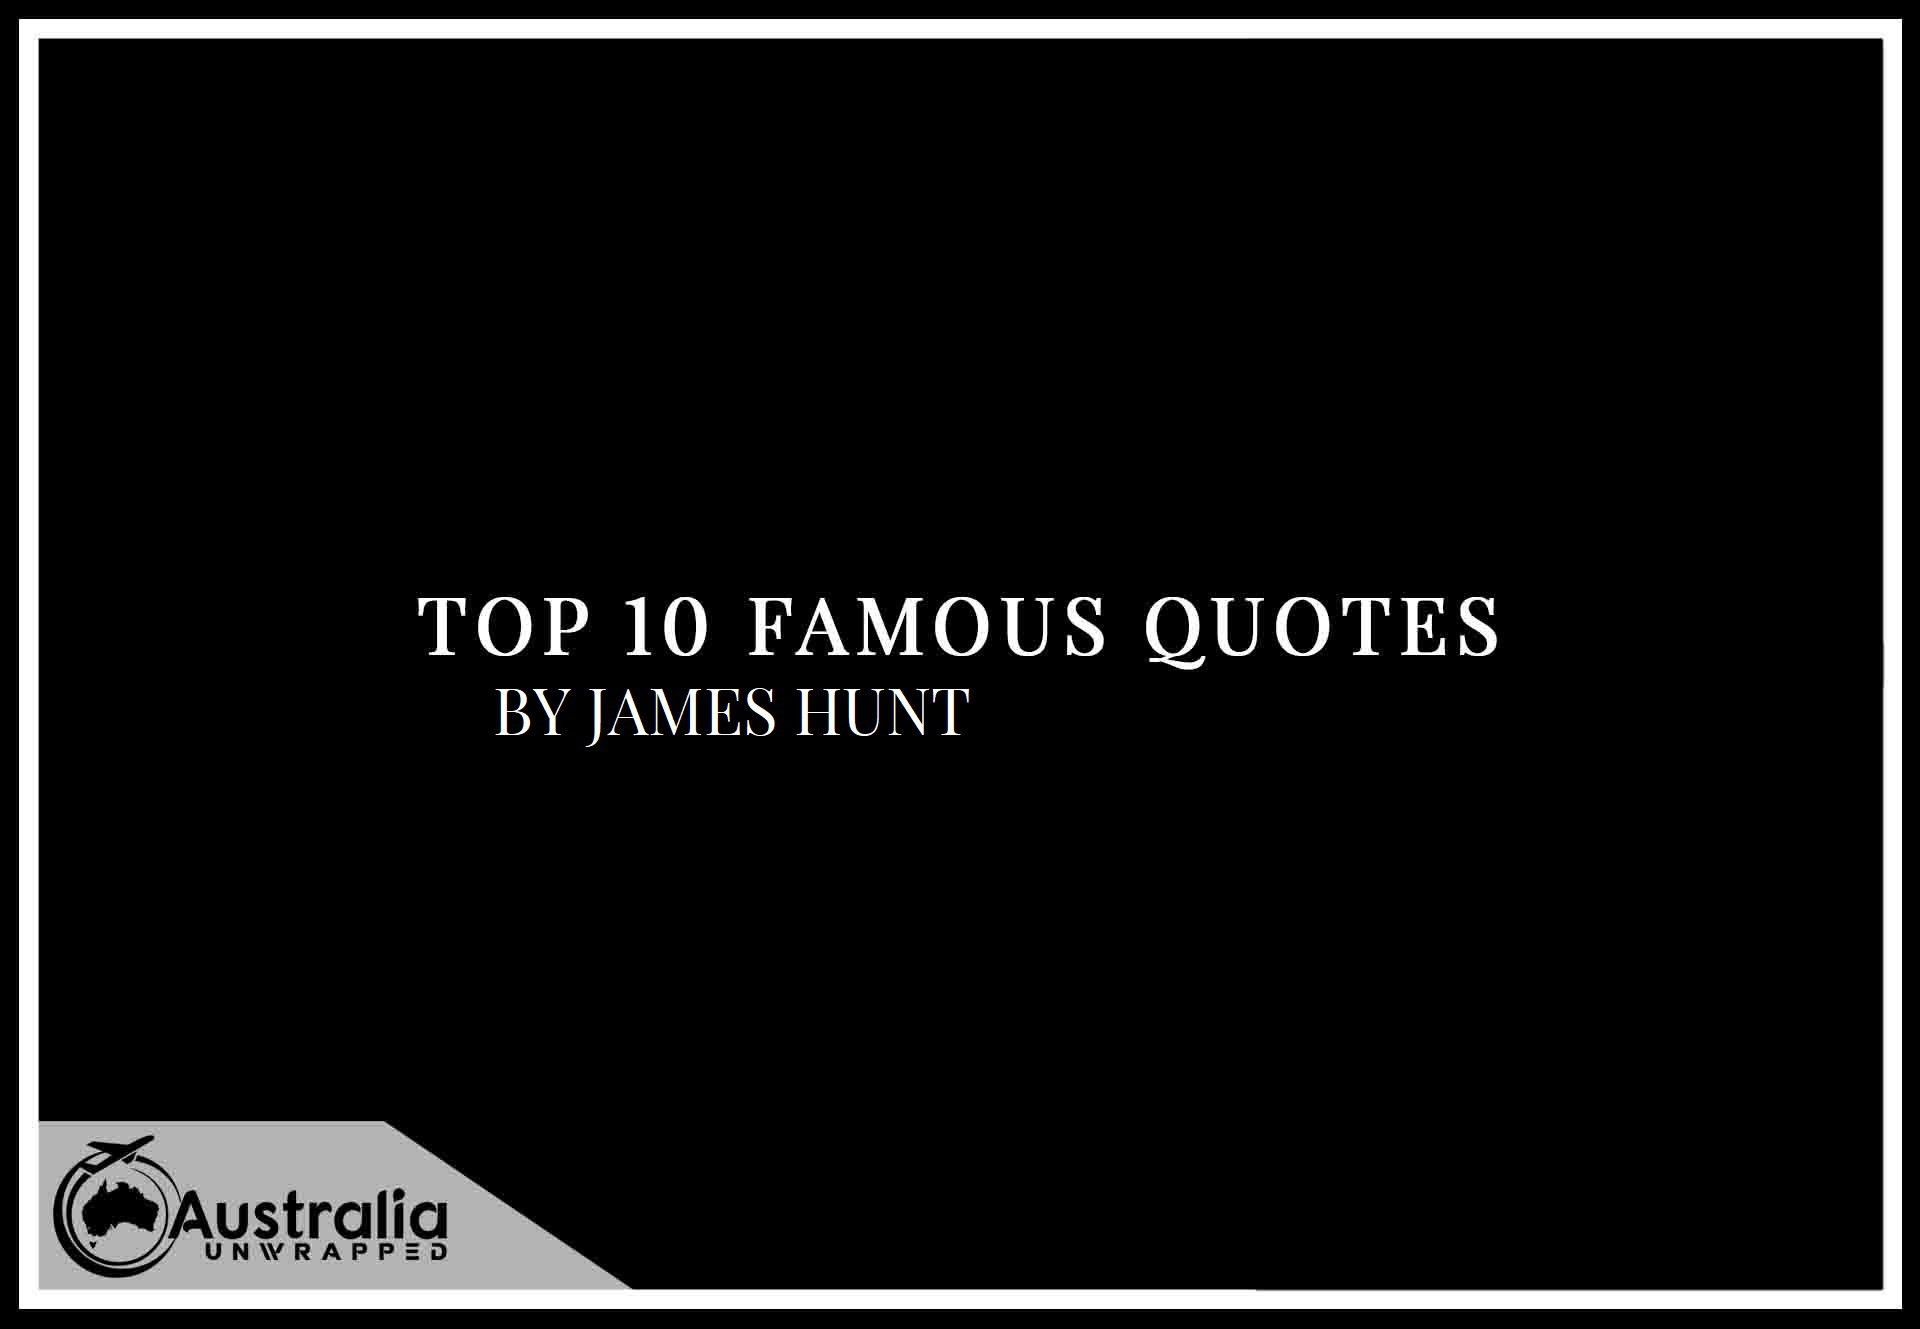 Top 10 Famous Quotes by Author James Hunt